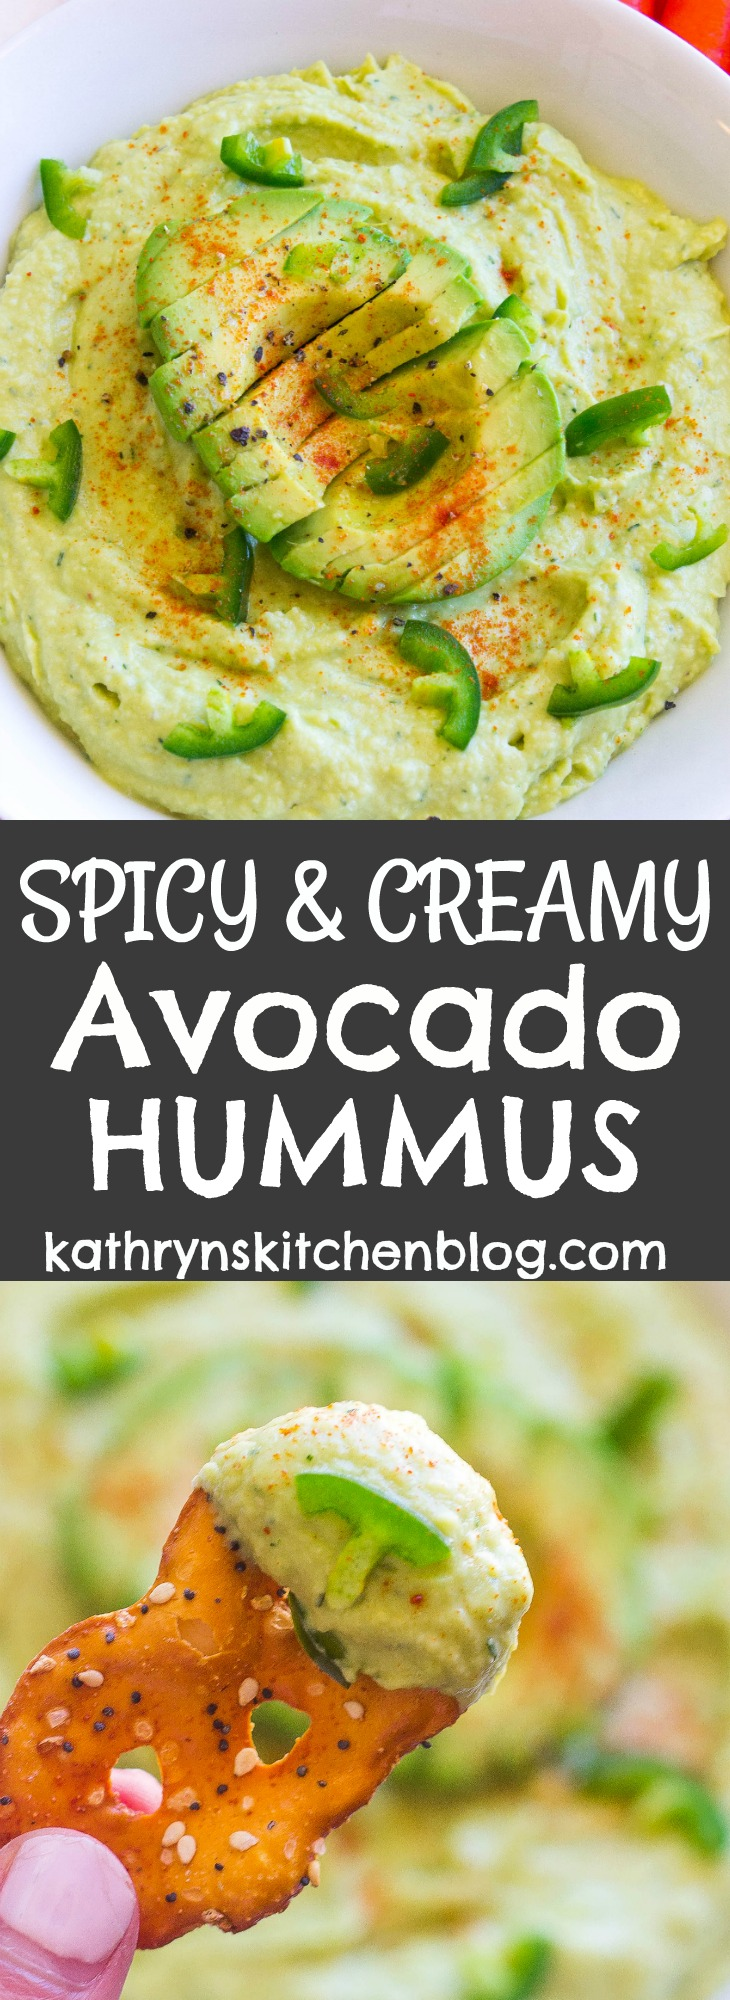 Creamy and Spicy Avocado Hummus